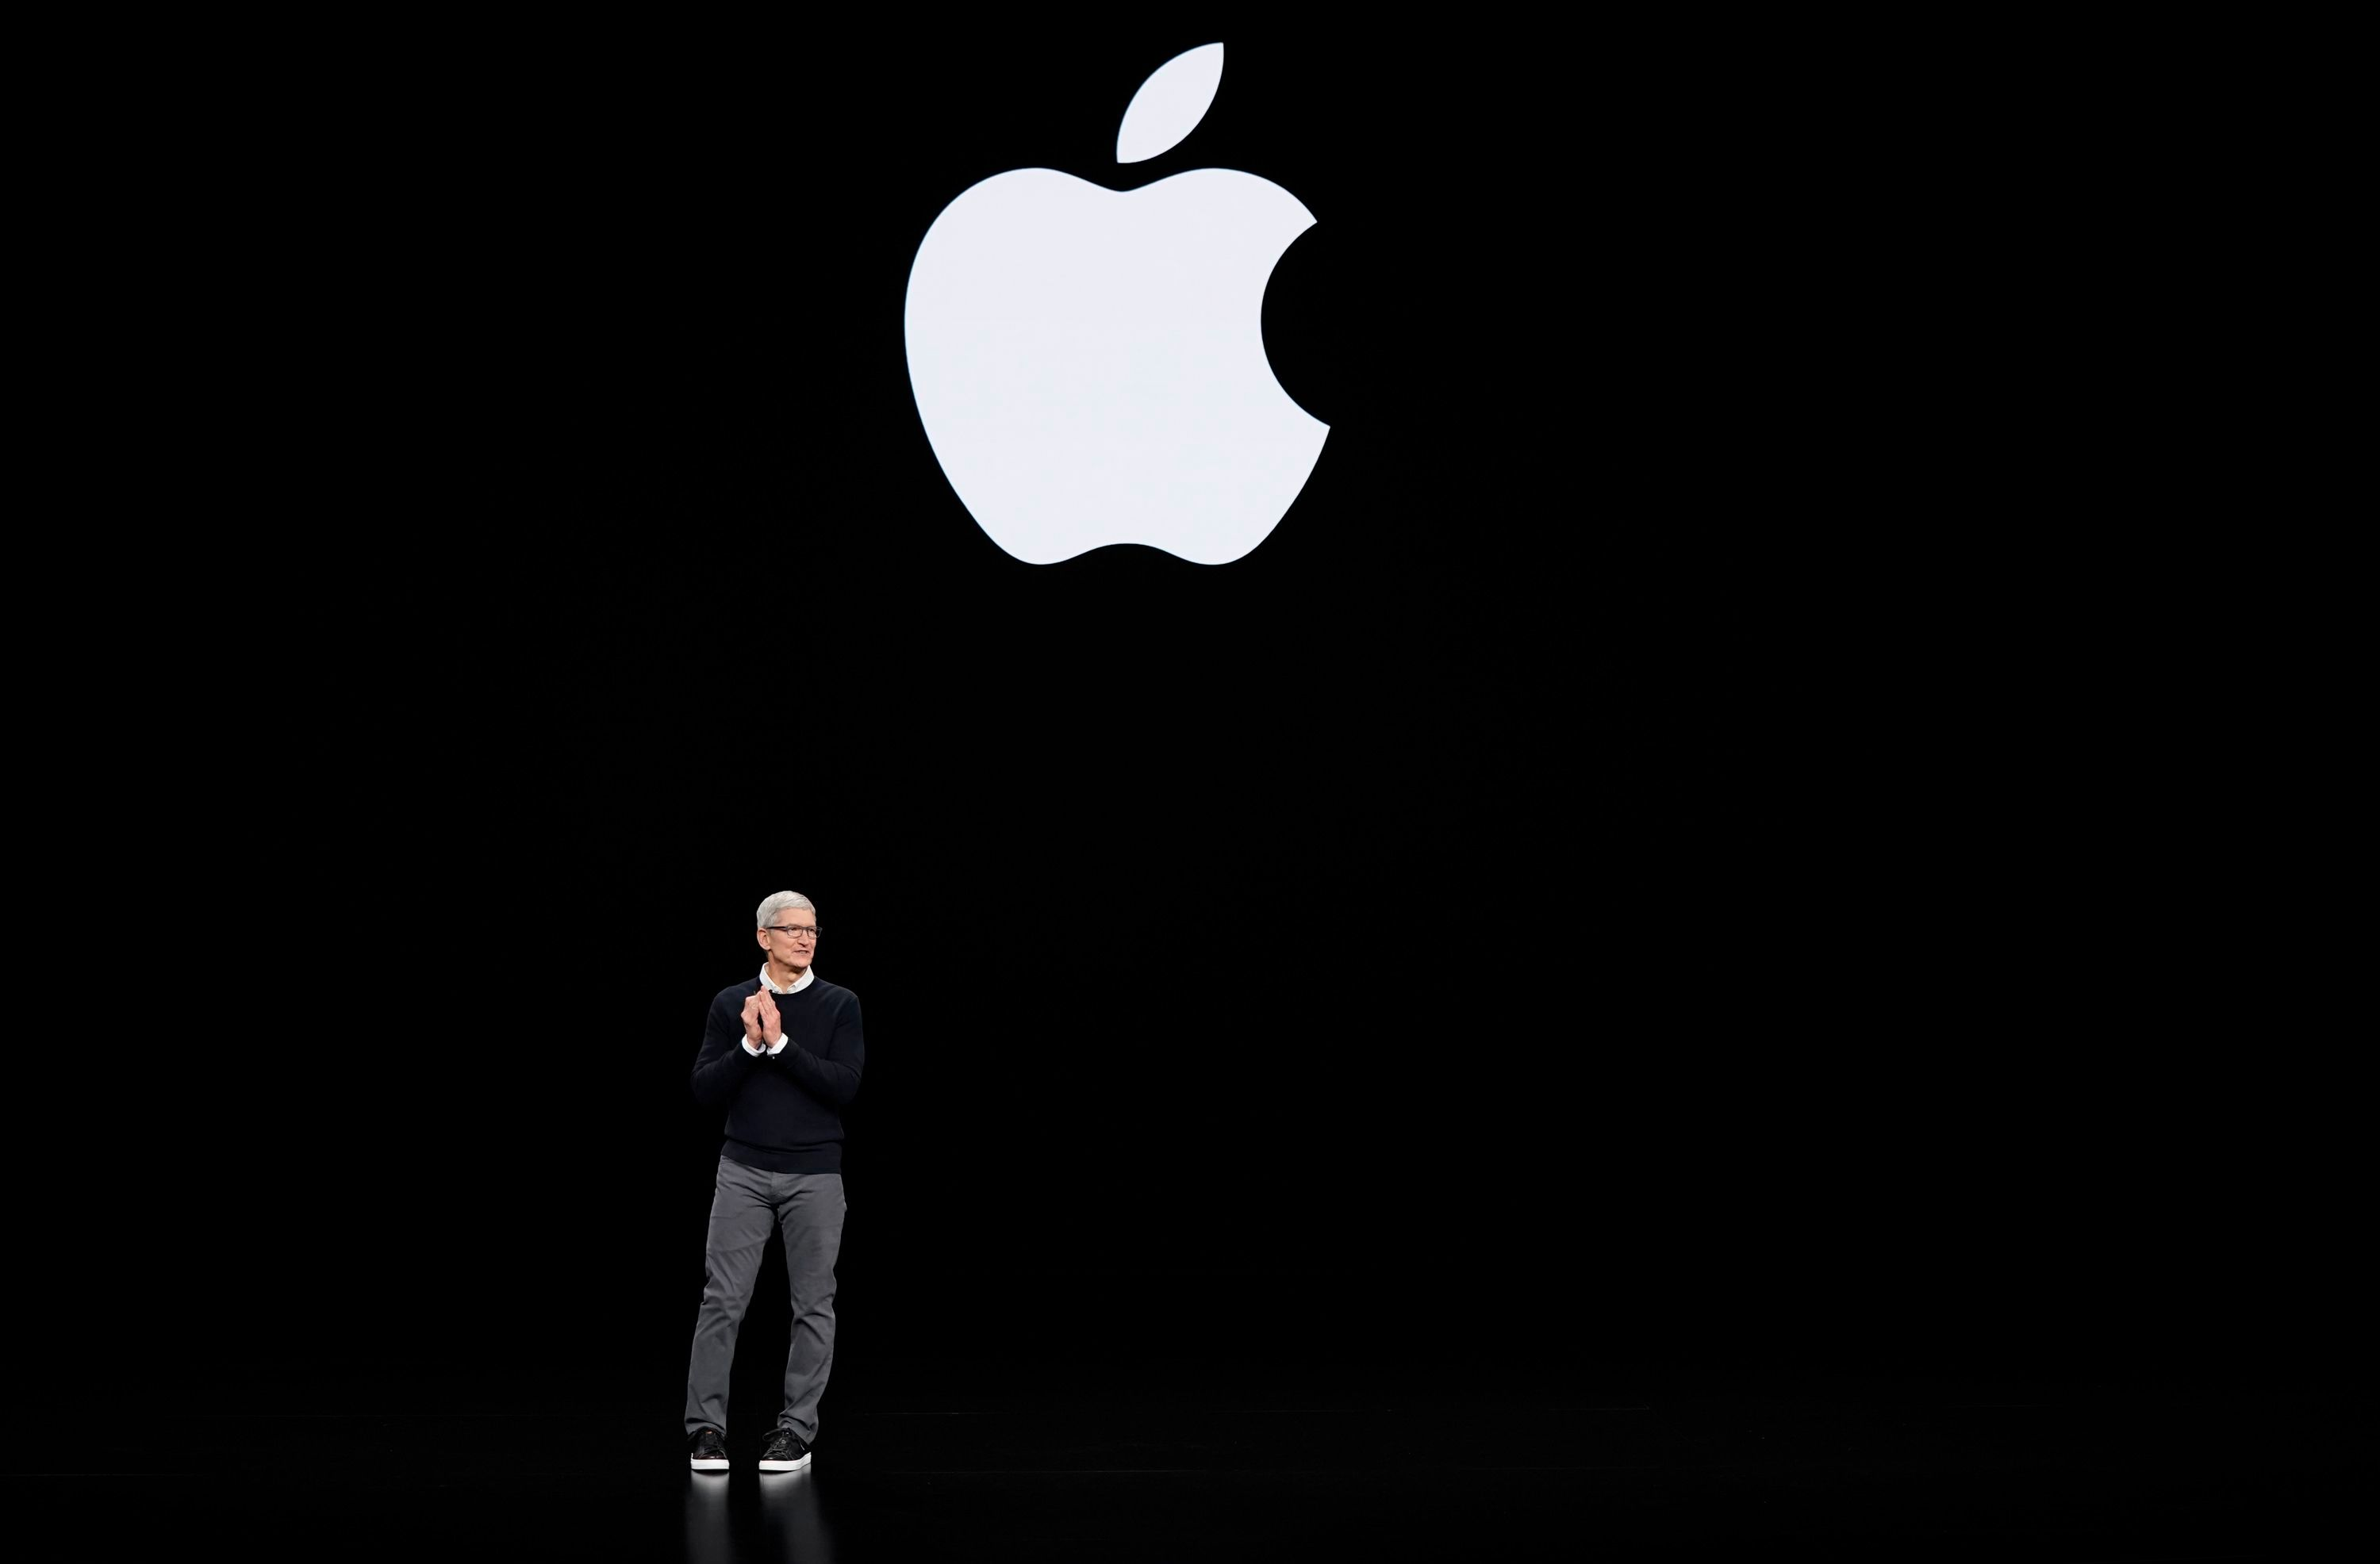 Apple CEO Tim Cook speaks at the Steve Jobs Theater during an event to announce new products, in Cupertino, CalifApple Streaming TV, Cupertino, USA - 25 Mar 2019